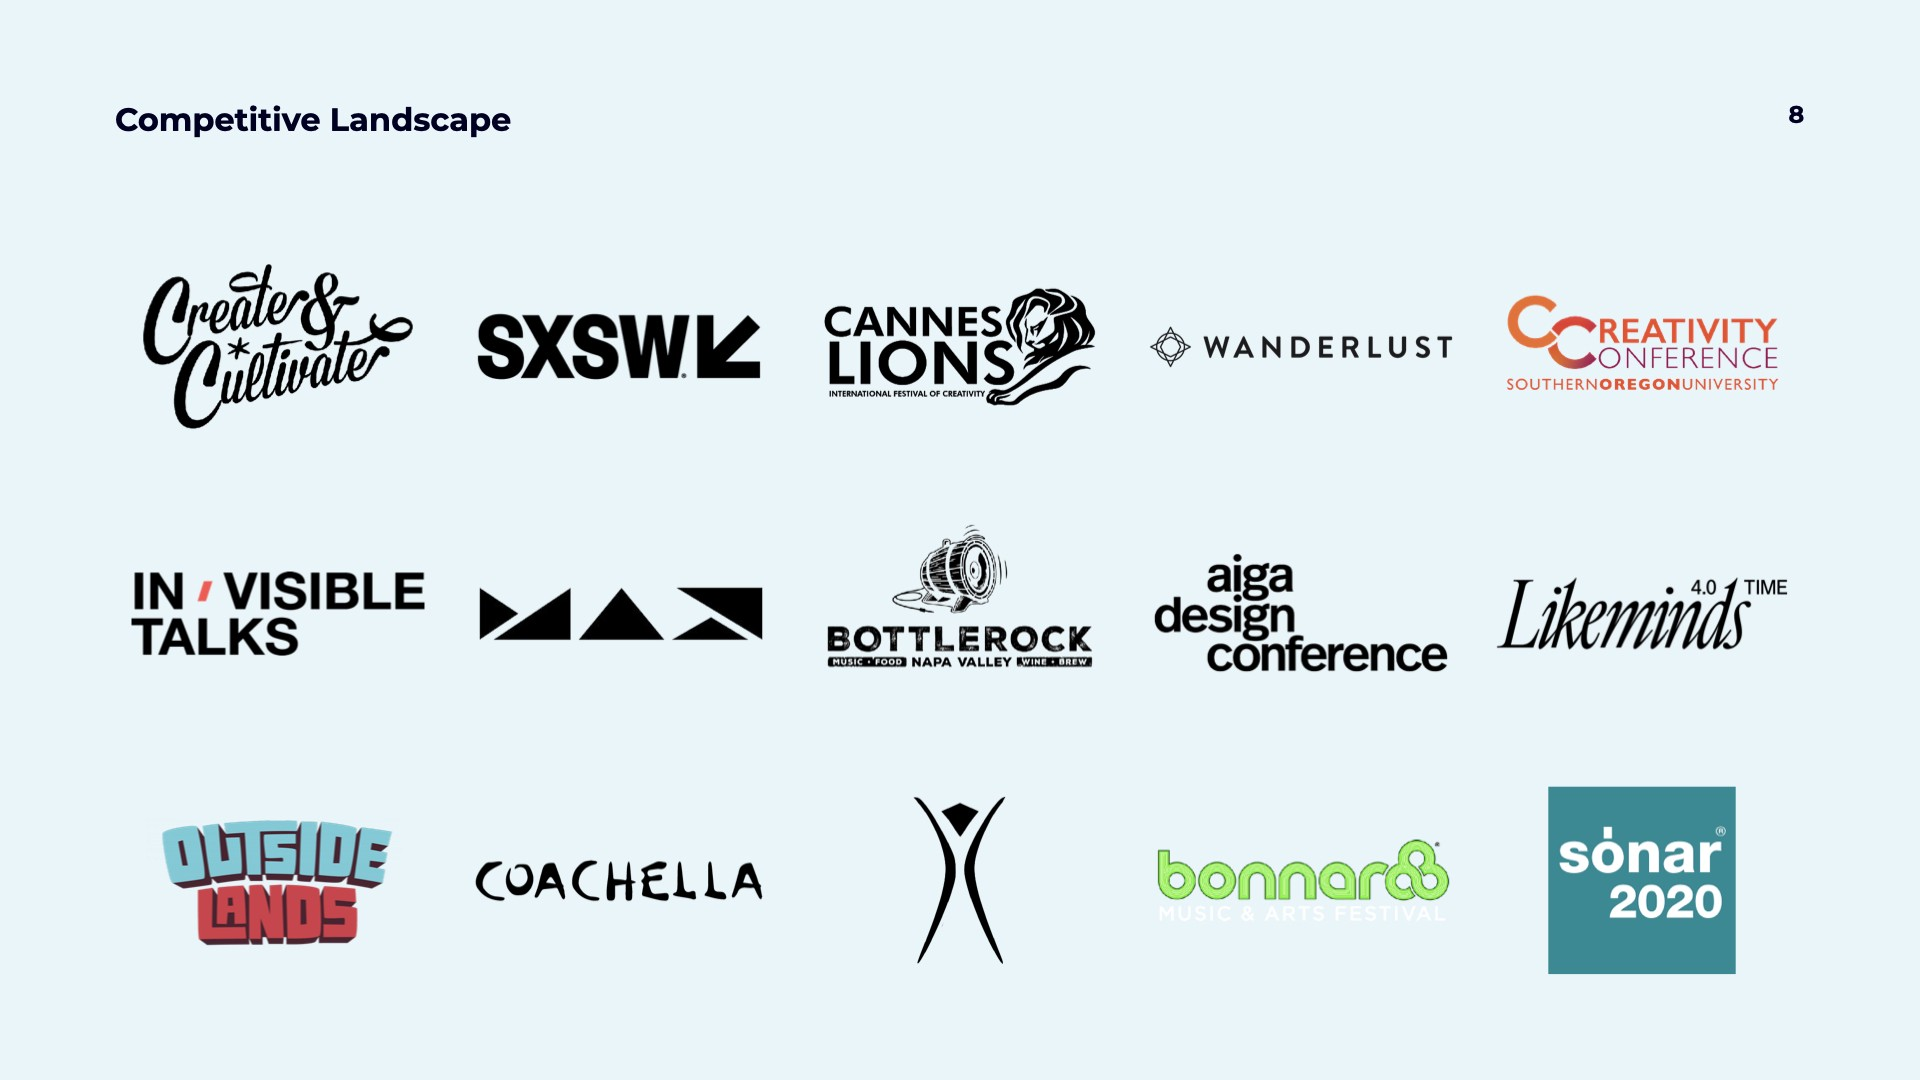 Grid of logos showing the competitive landscape for creative festivals